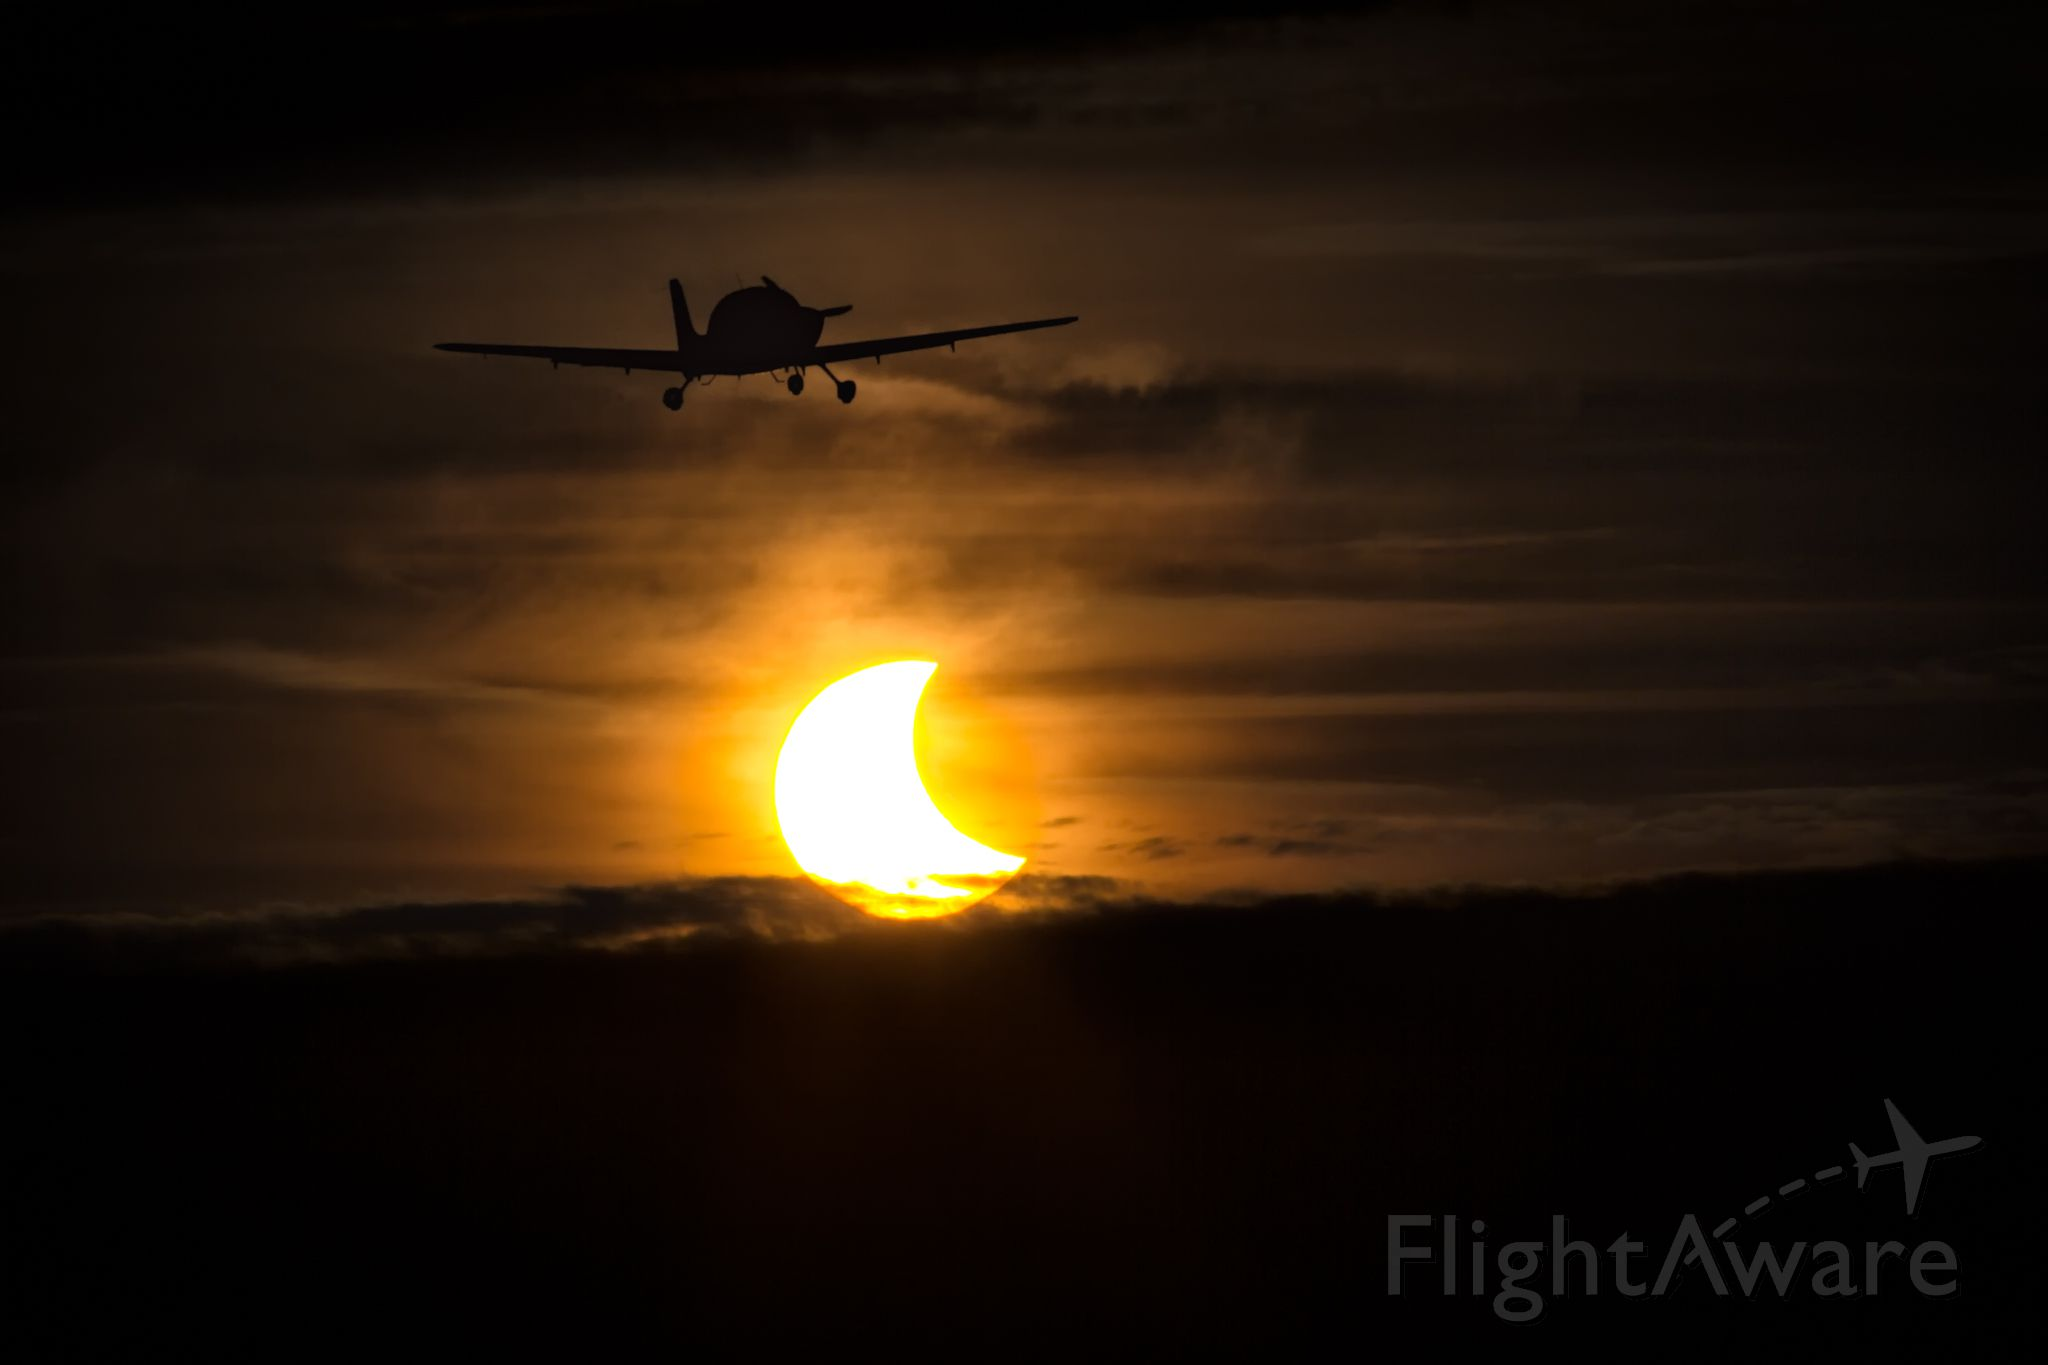 """Cirrus SR-20 — - A Cirrus departing Pontiac Airport during the height of the Oct. 23 Solar Eclipse.<br /><br /><a rel=""""nofollow"""" href=""""http://www.adler-photo.com"""">www.adler-photo.com</a>"""